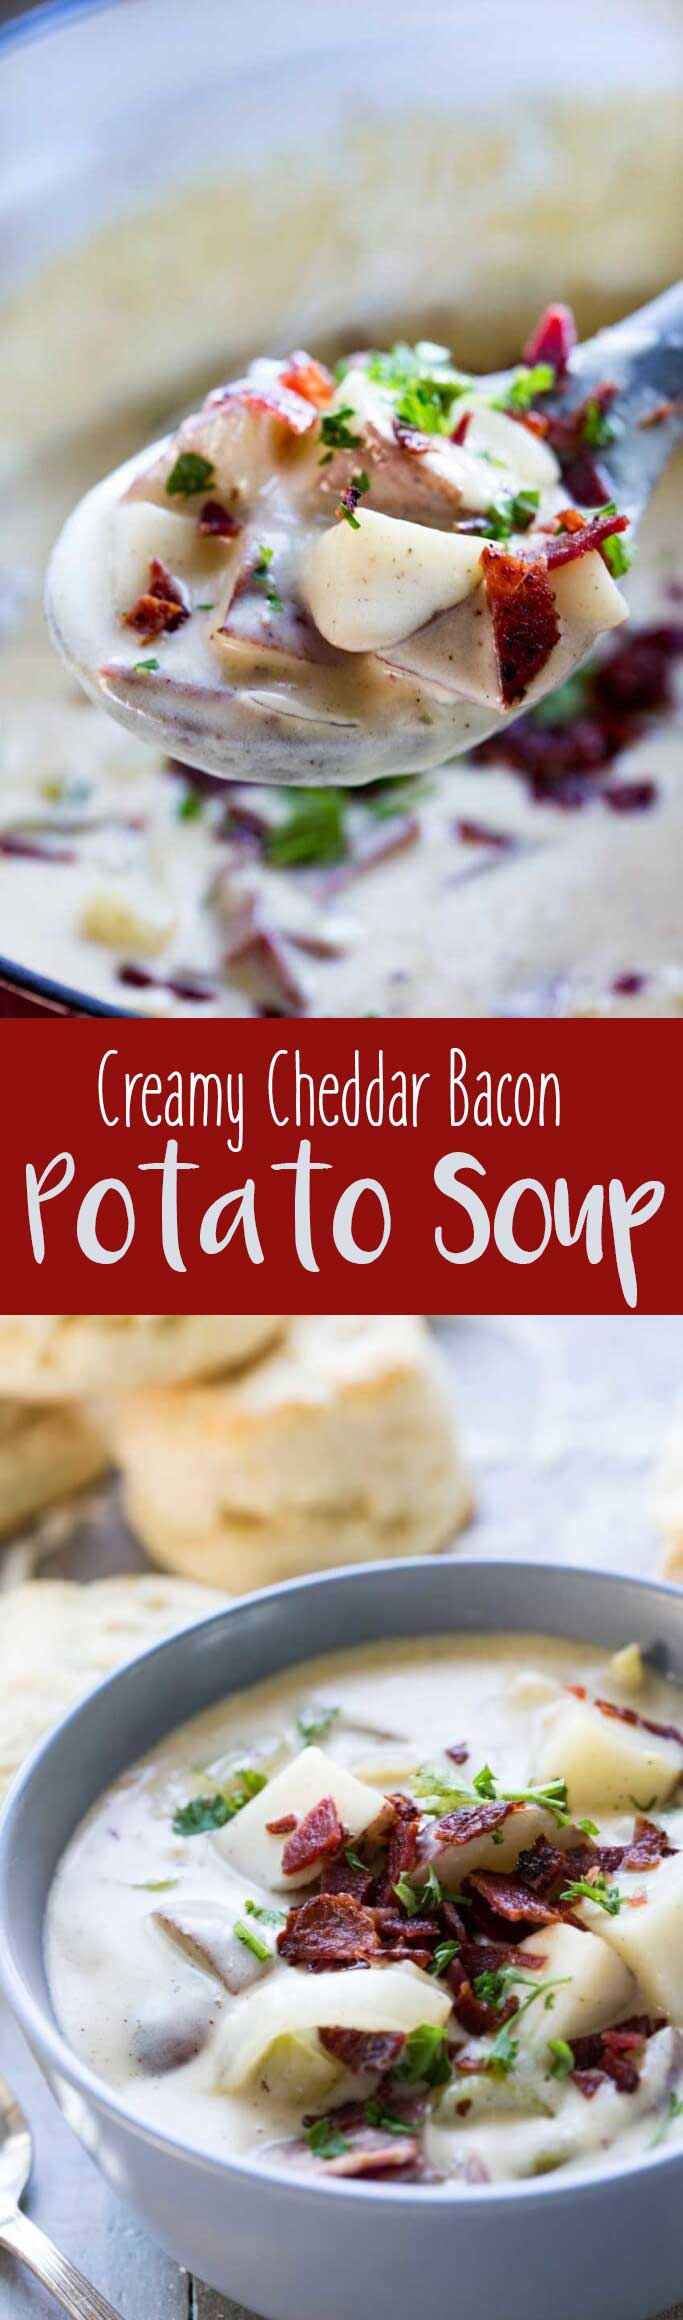 Creamy Cheddar Bacon Potato Soup is perfect for chilly Fall weather. #ad #VoteWrightBrandBacon